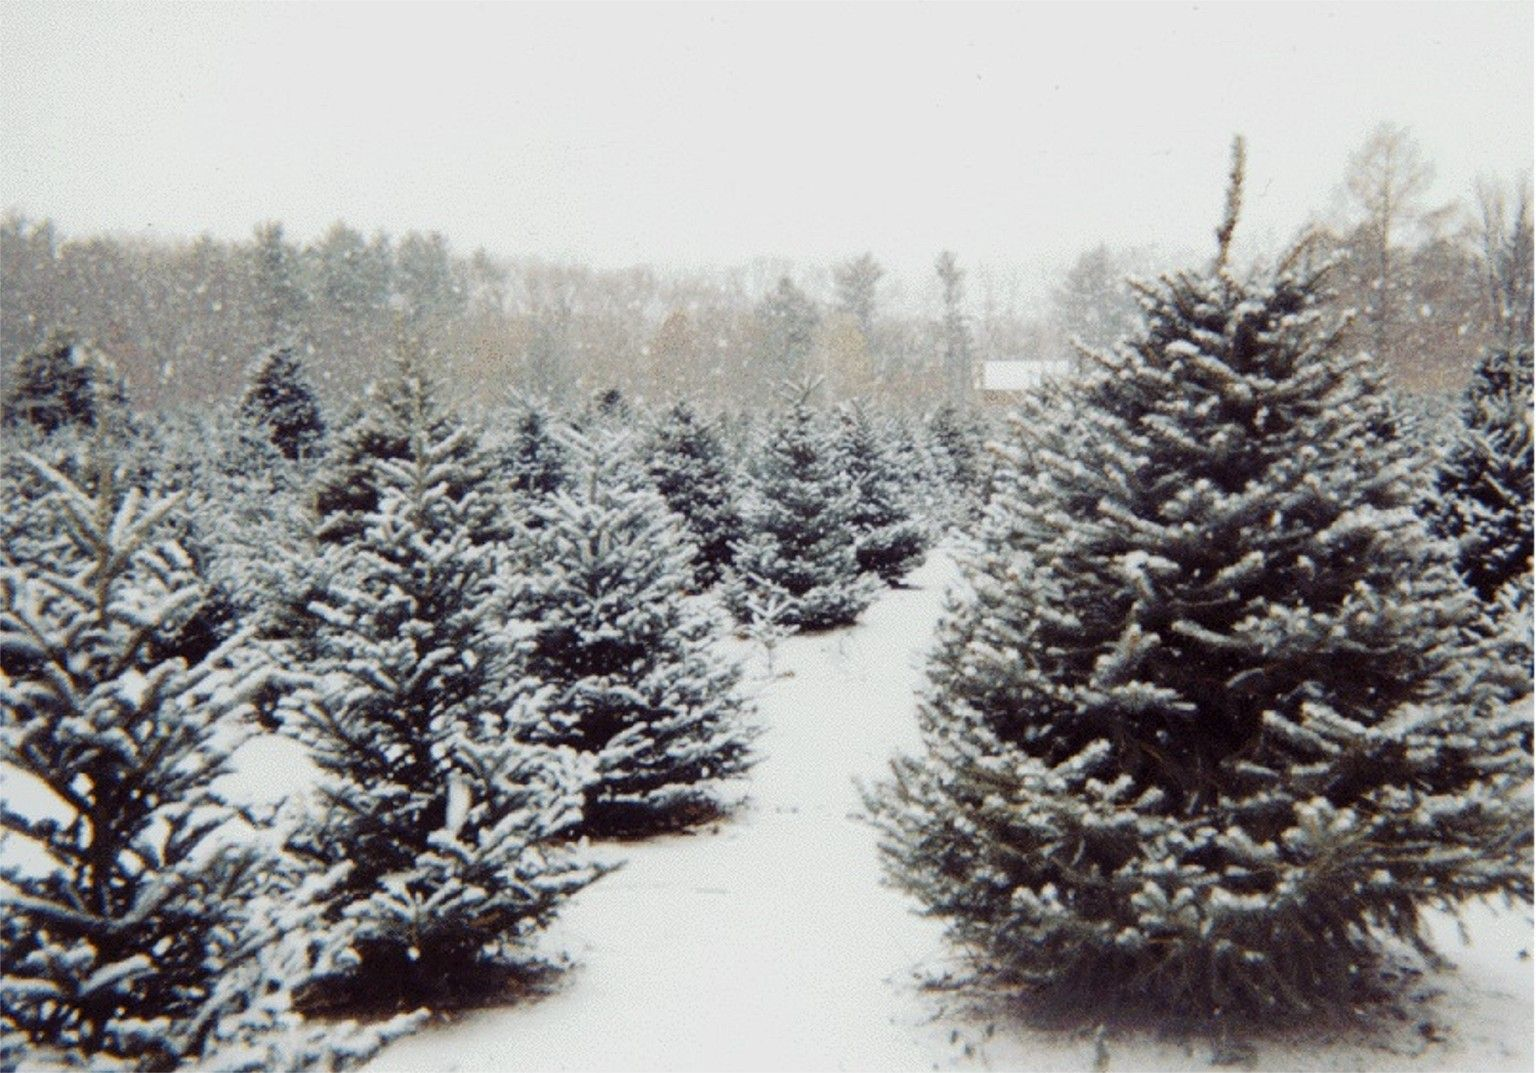 I Love Real Christmas Trees They Look Amazing Even If They Are Not Decorated Christmas Tree Farm Tree Farms Real Christmas Tree